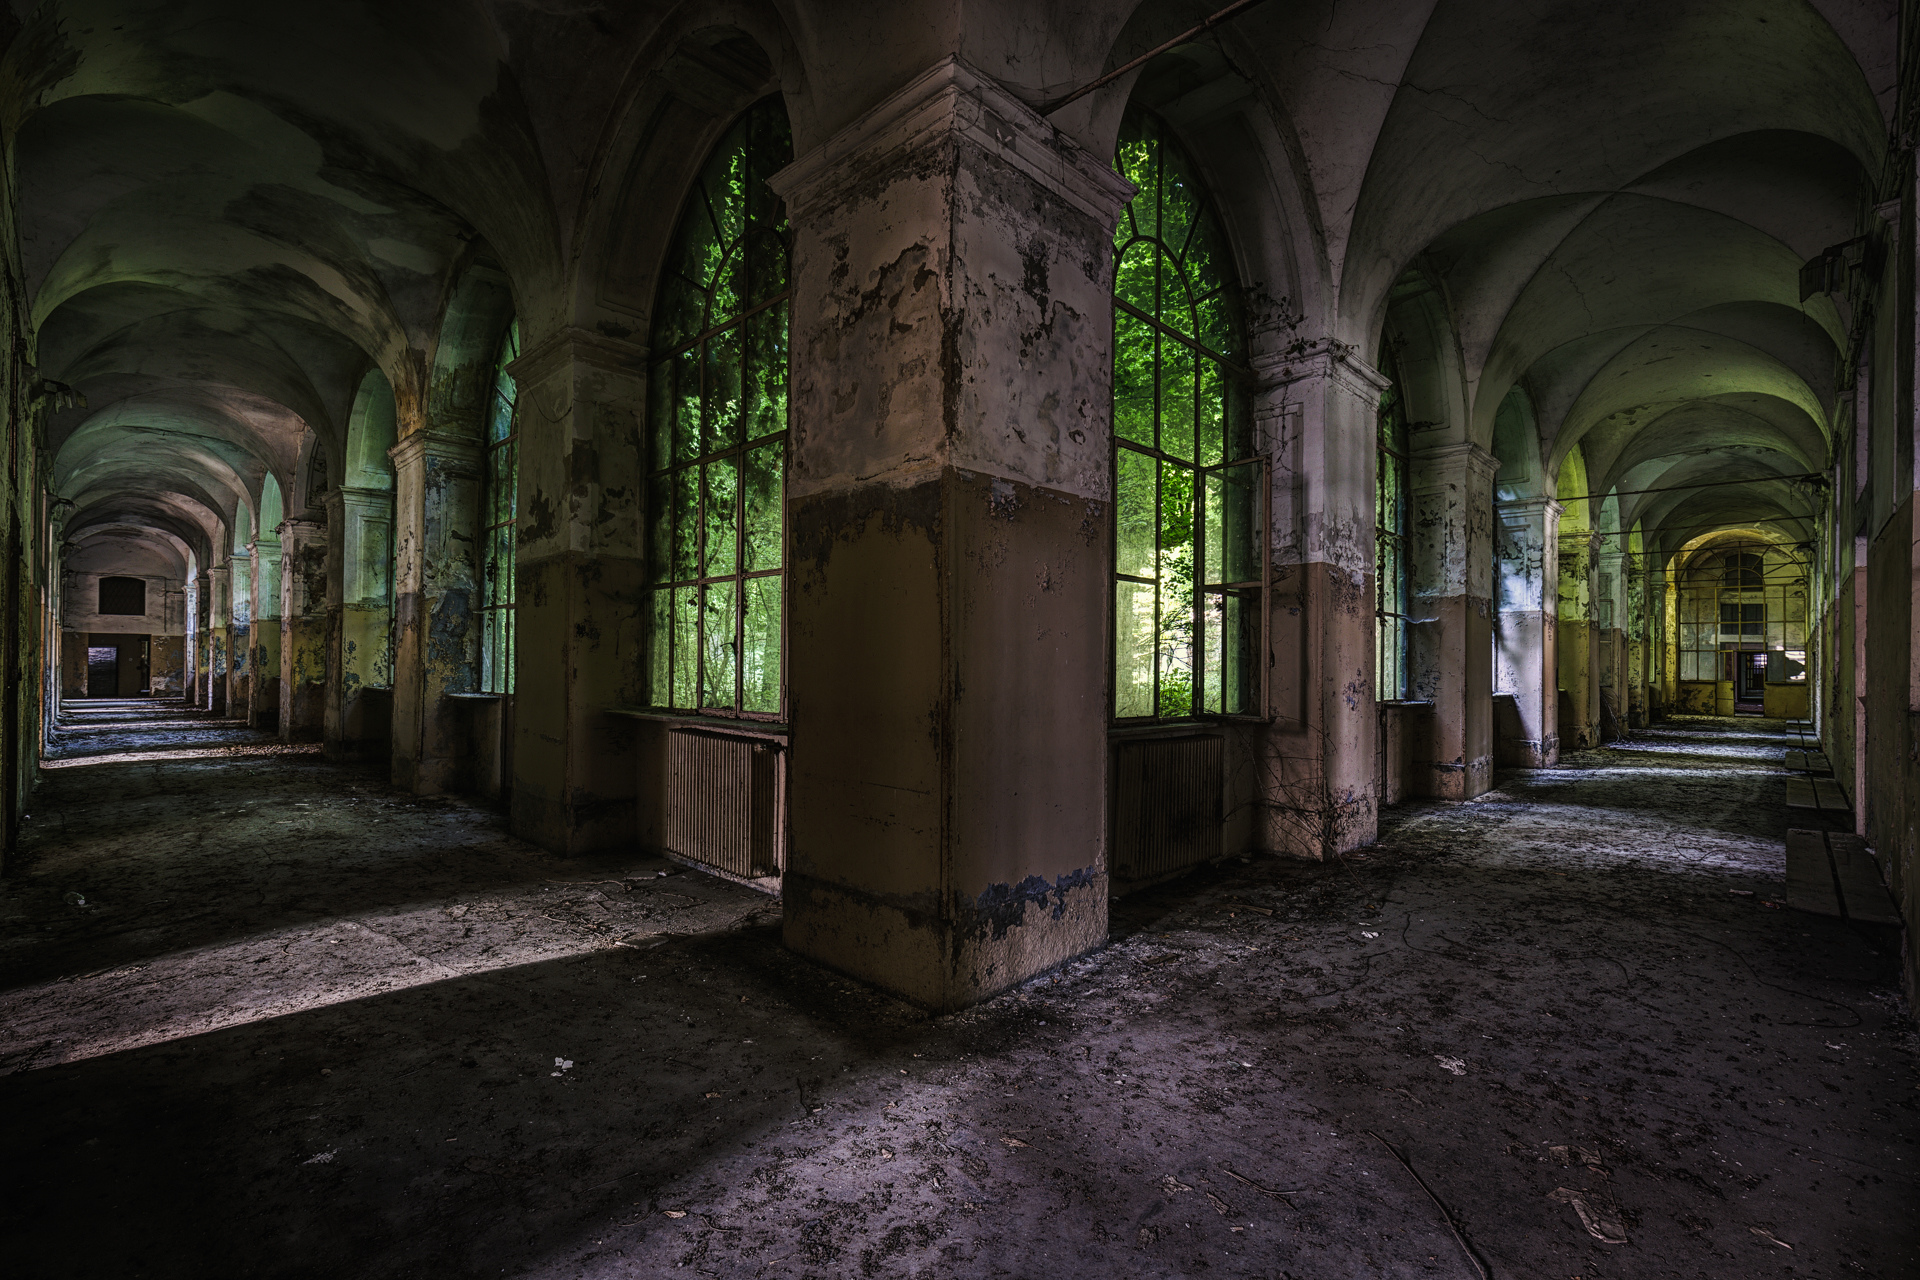 Urban Exploration - Manicomio Dr. Rossetti - Green Symmetry